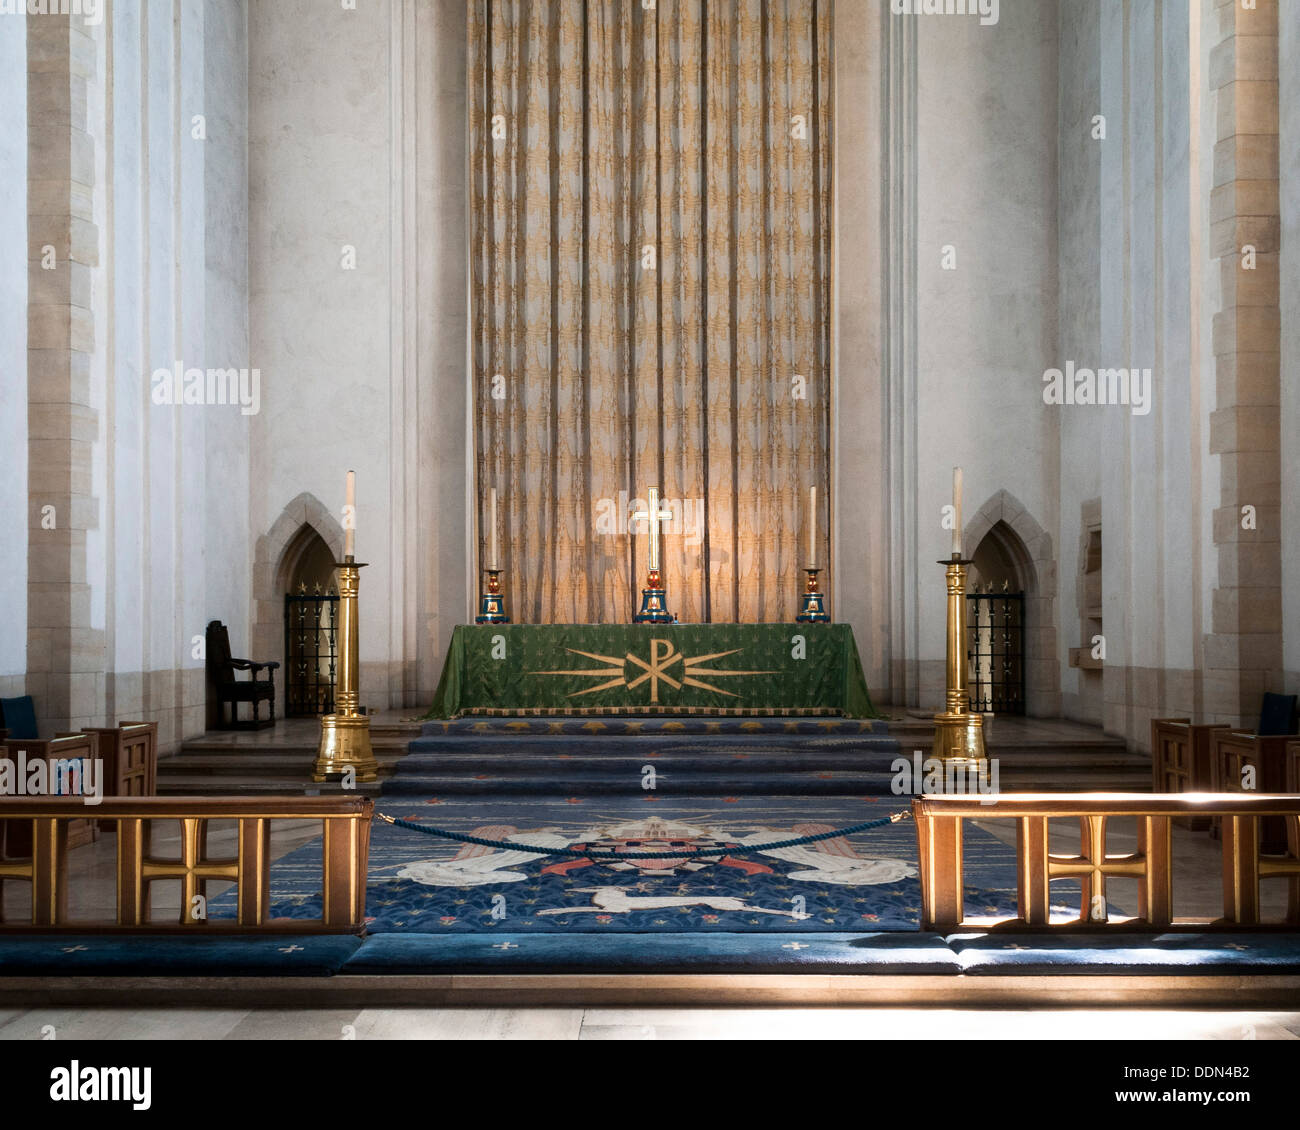 Guildford Cathedral, Guildford, United Kingdom. Architect: Sir Edward Maufe, 1961. Altar. Stock Photo